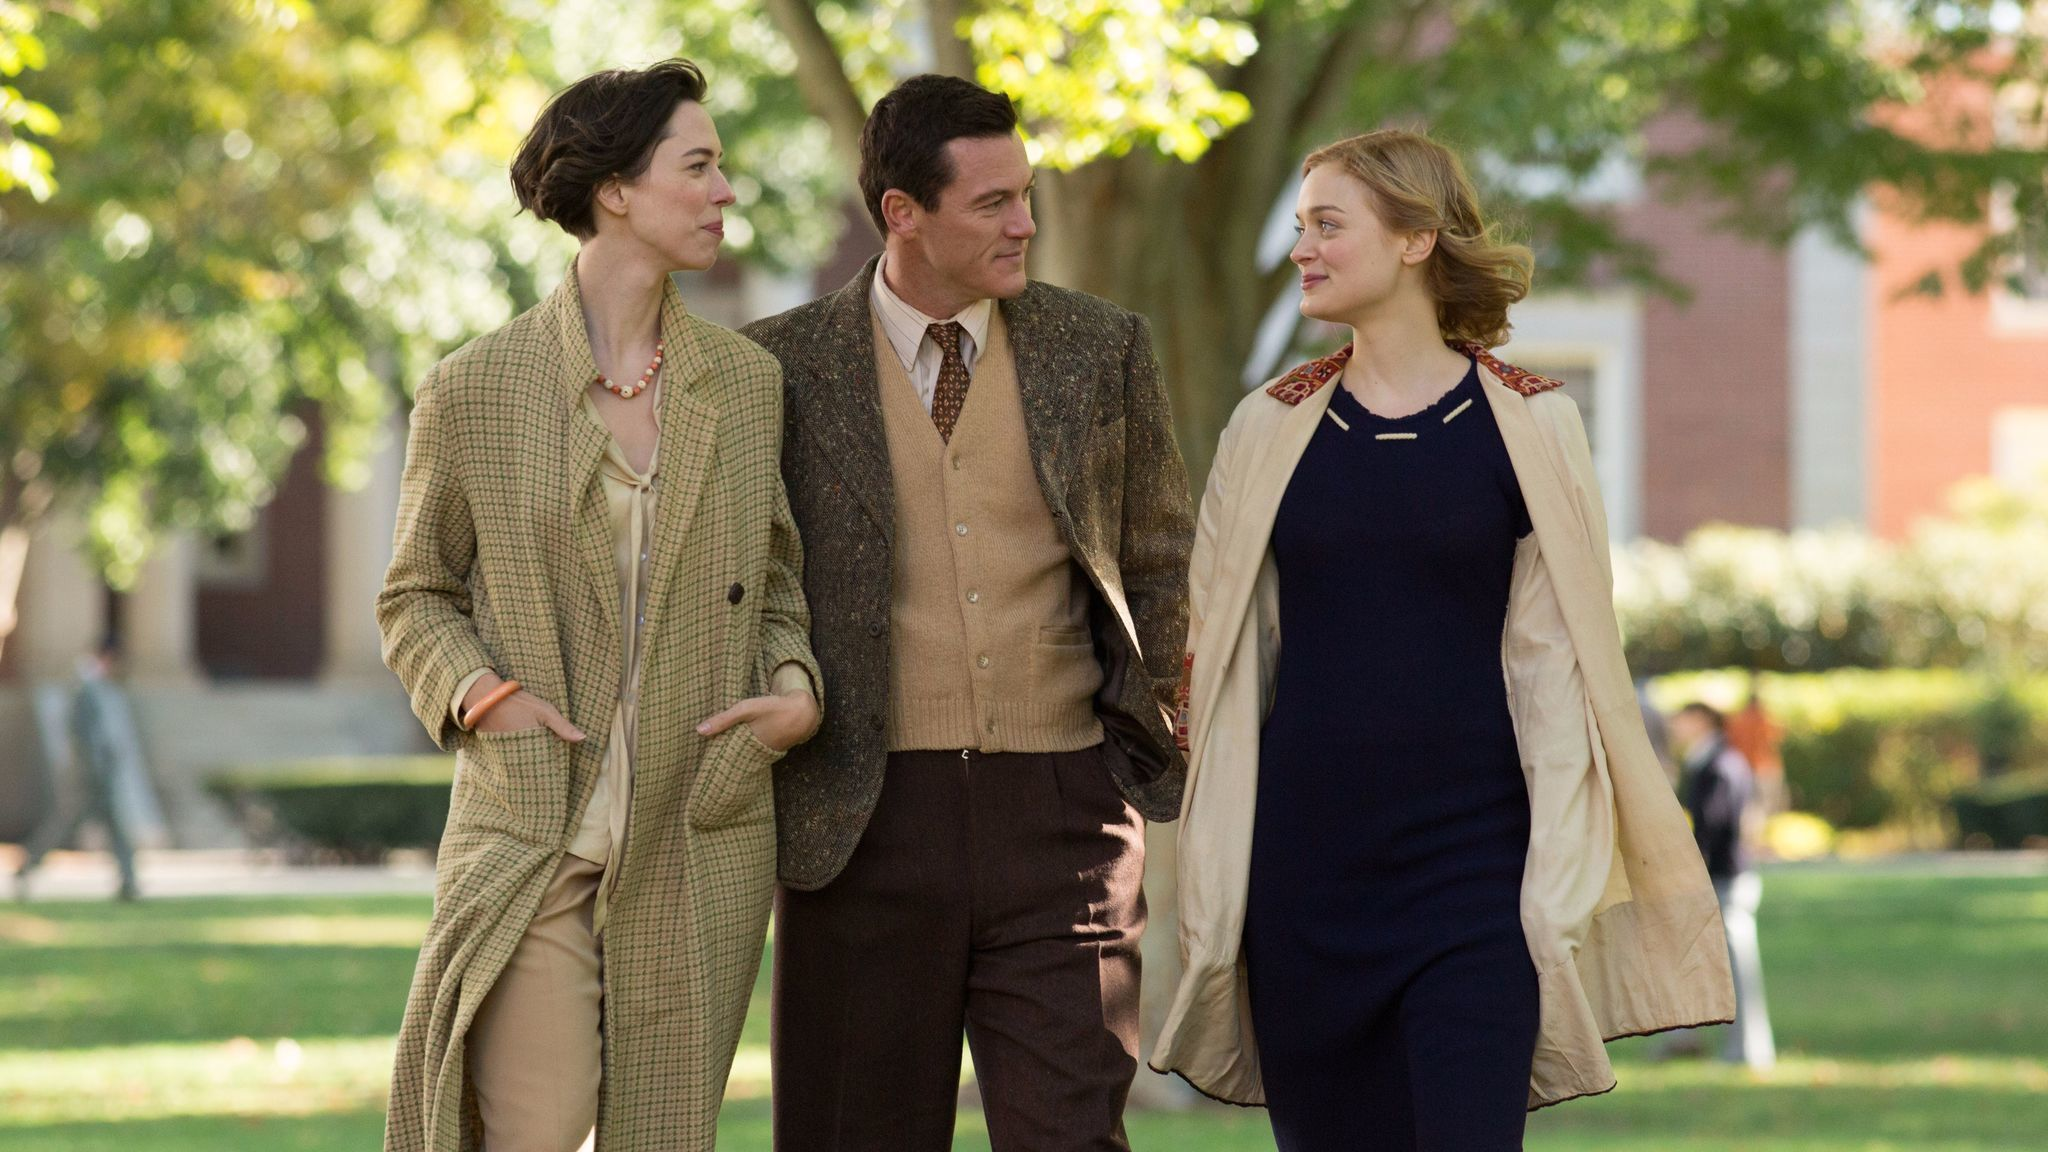 'Professor Marston and the Wonder Women' is a triumph of empathetic romanticism